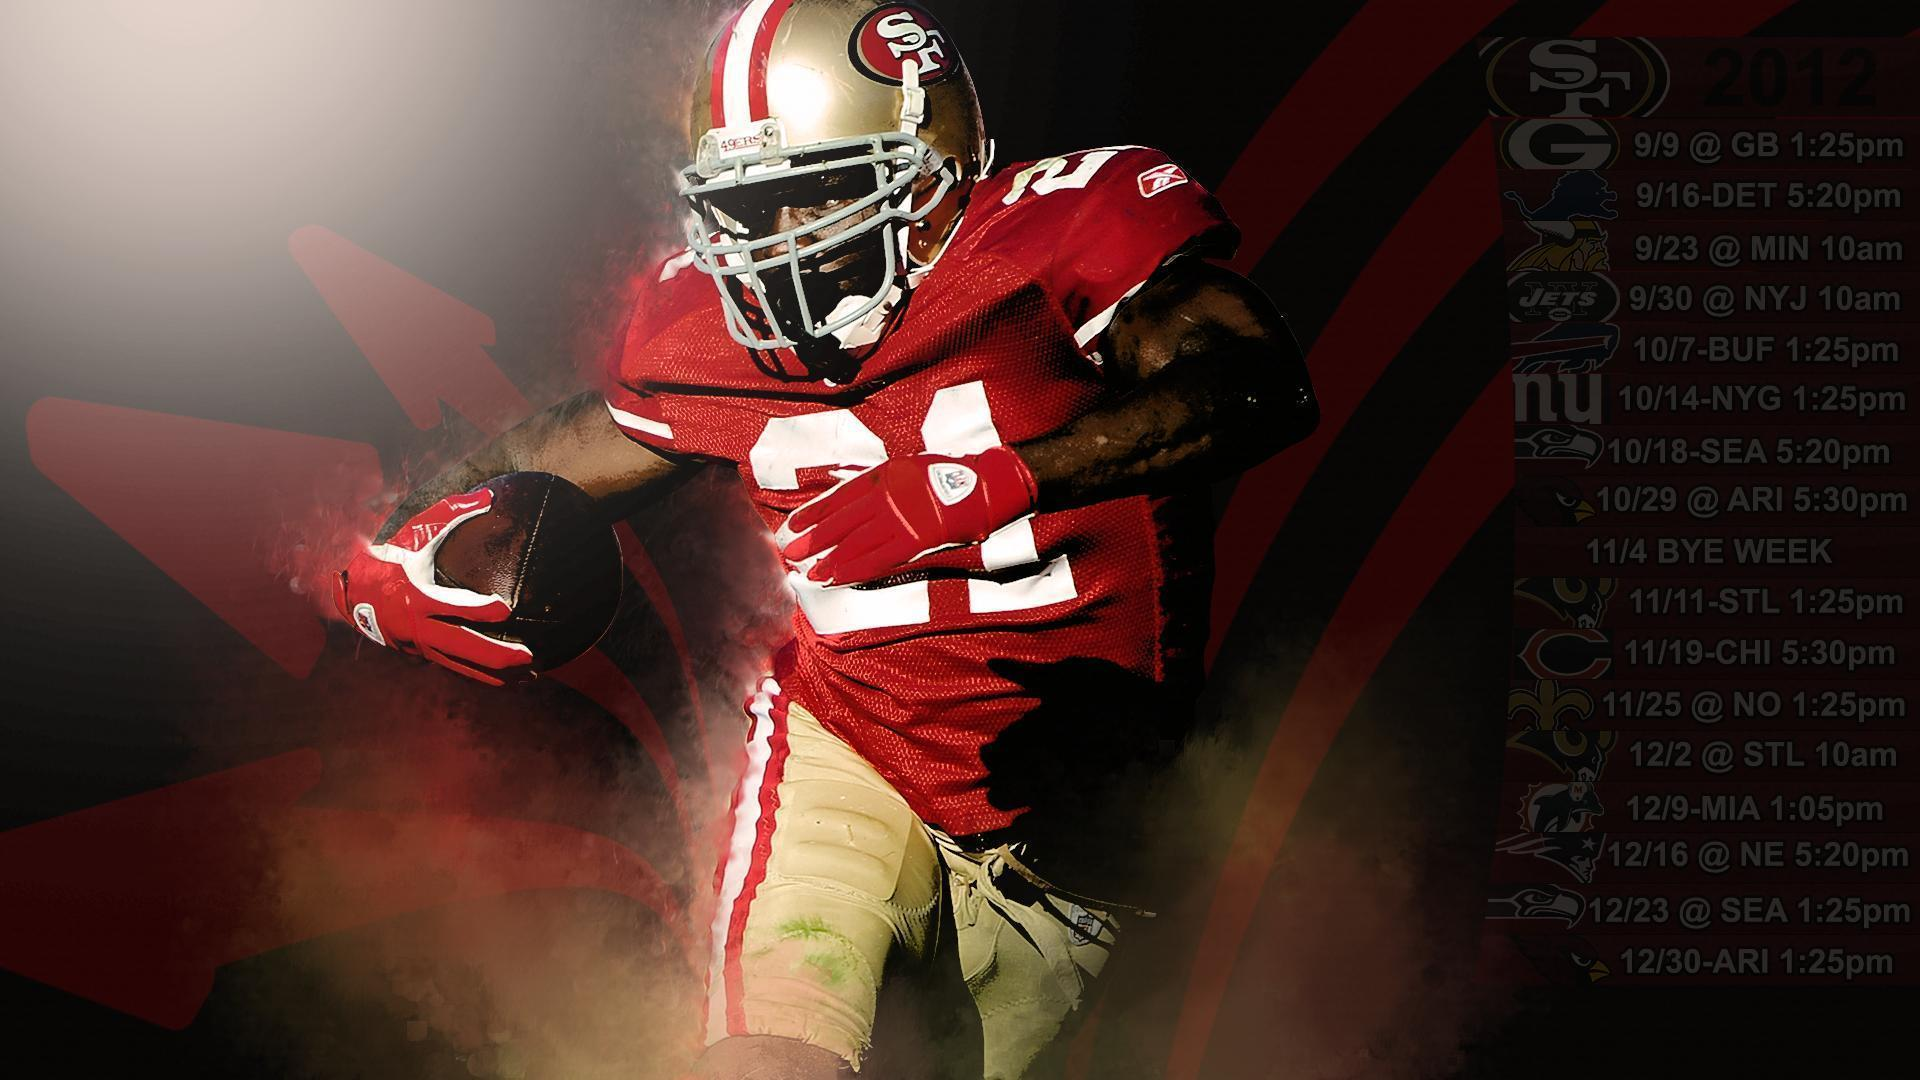 49ers wallpapers 2015 wallpaper cave